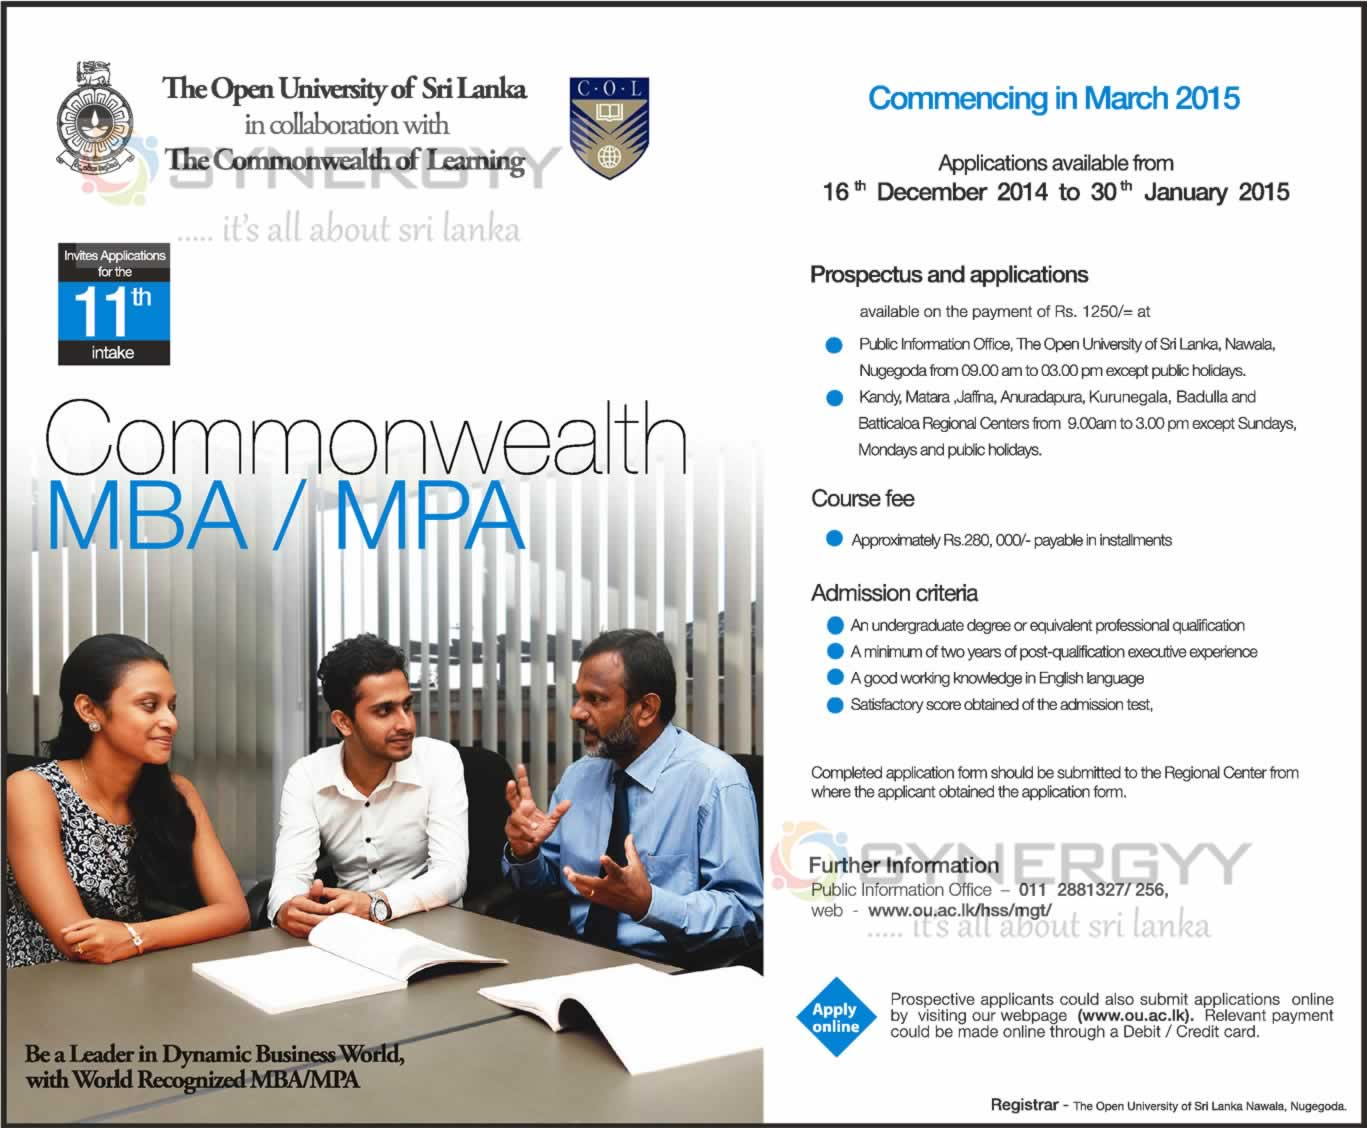 open university mba essay competition Second thepensters essay competition august 2017 - may 2018 the participants of thepensters essay writing contest can  thepensters essay writing contest, 2018 is open for: open to all nationalities  who is offering thepensters essay  thepensters essay writing contest, 2018 covers partial funding, $1000  where can thepensters essay writing.